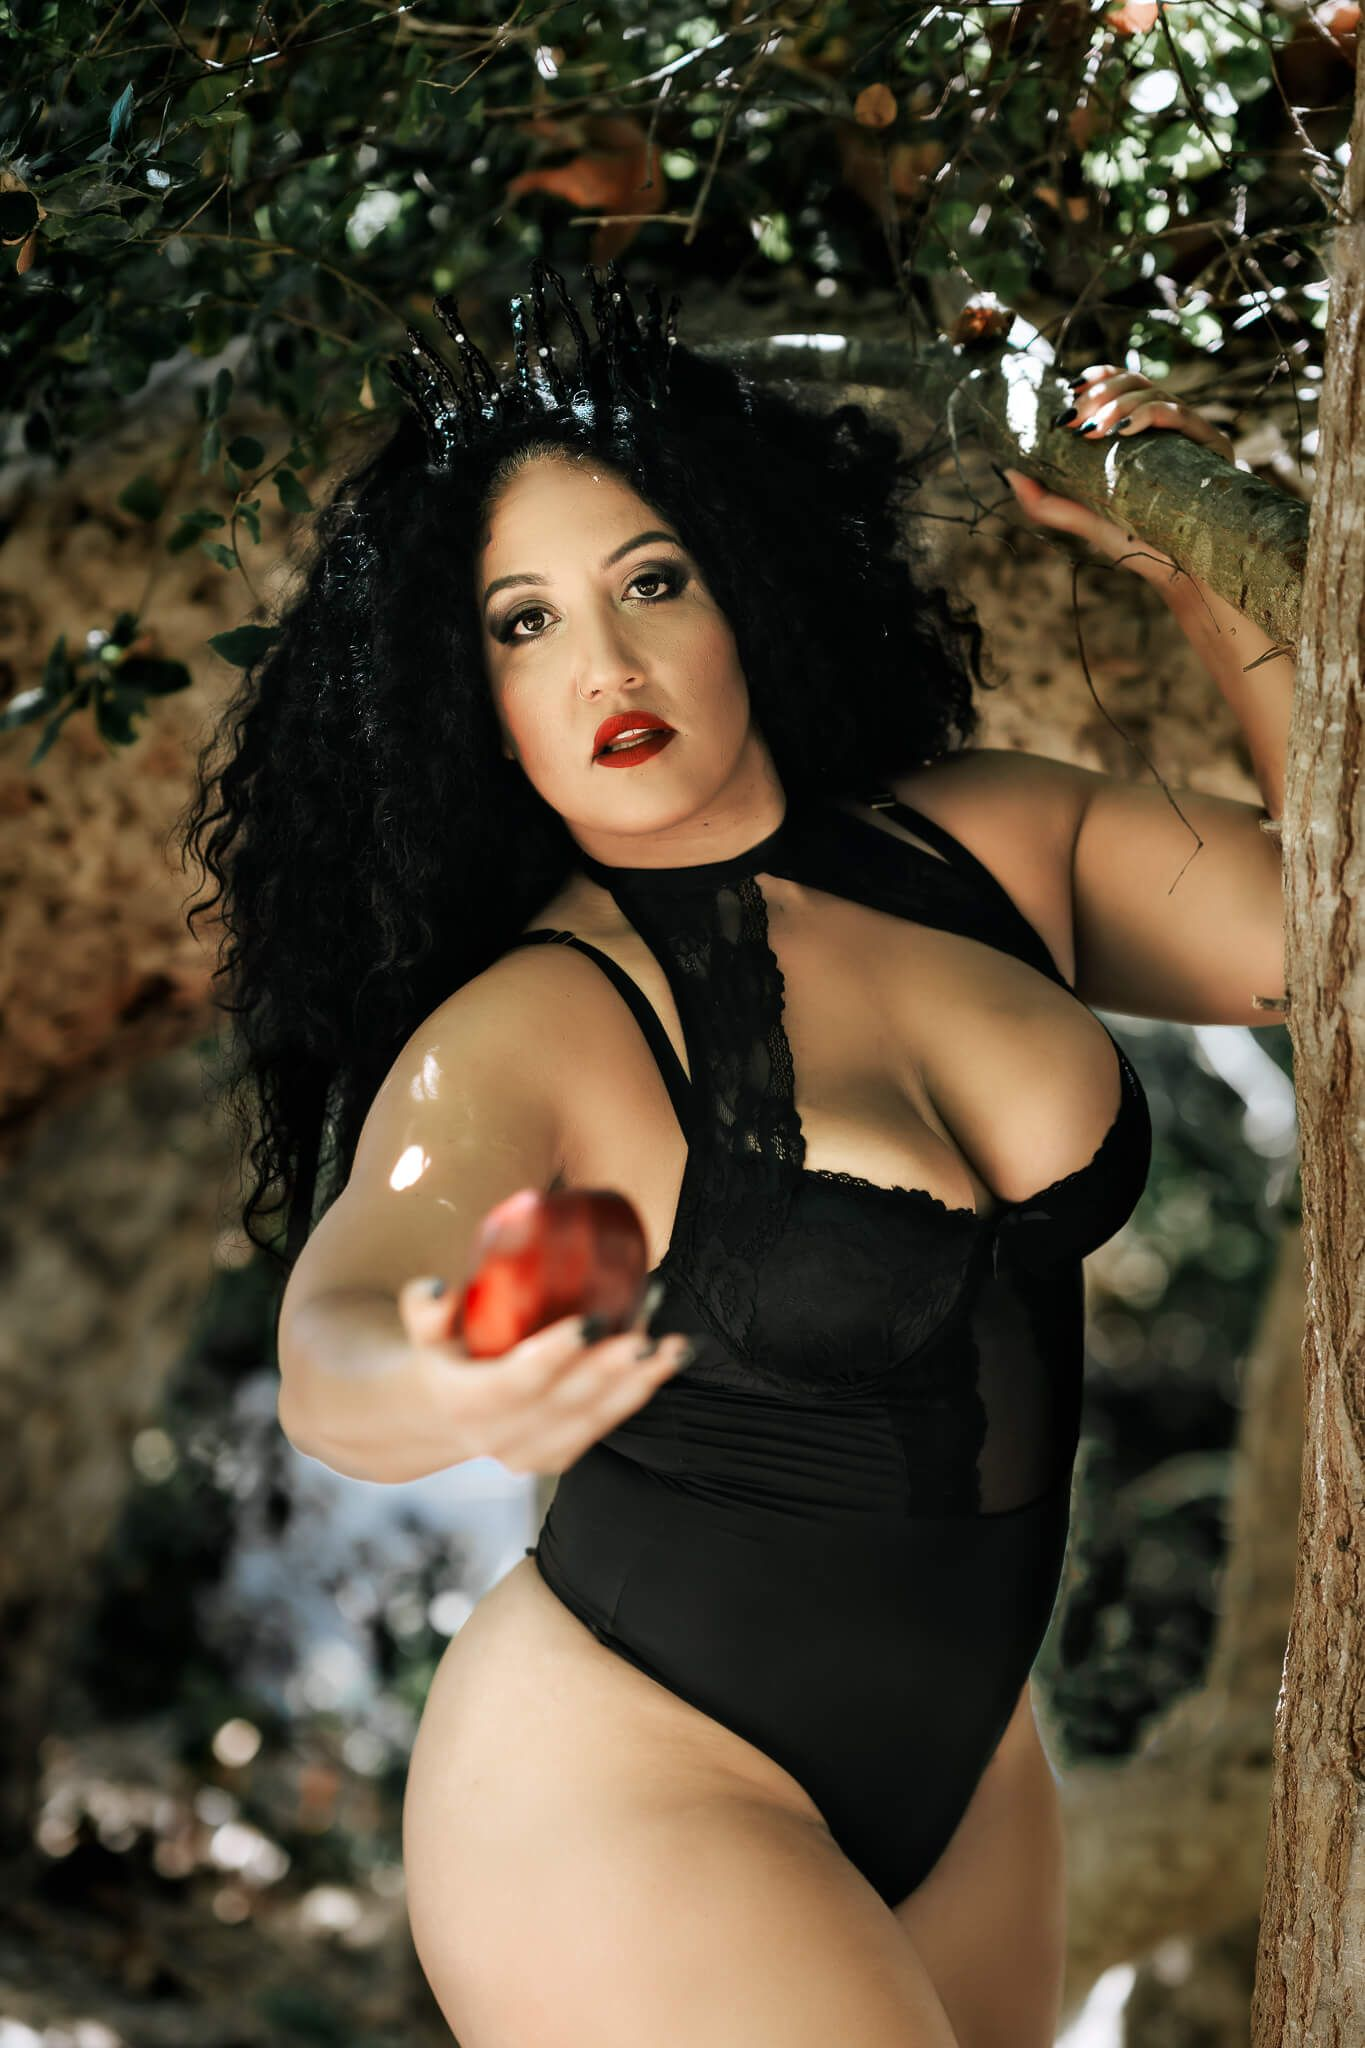 snow white lingerie dry ice creative session boudoir photography san diego outdoors